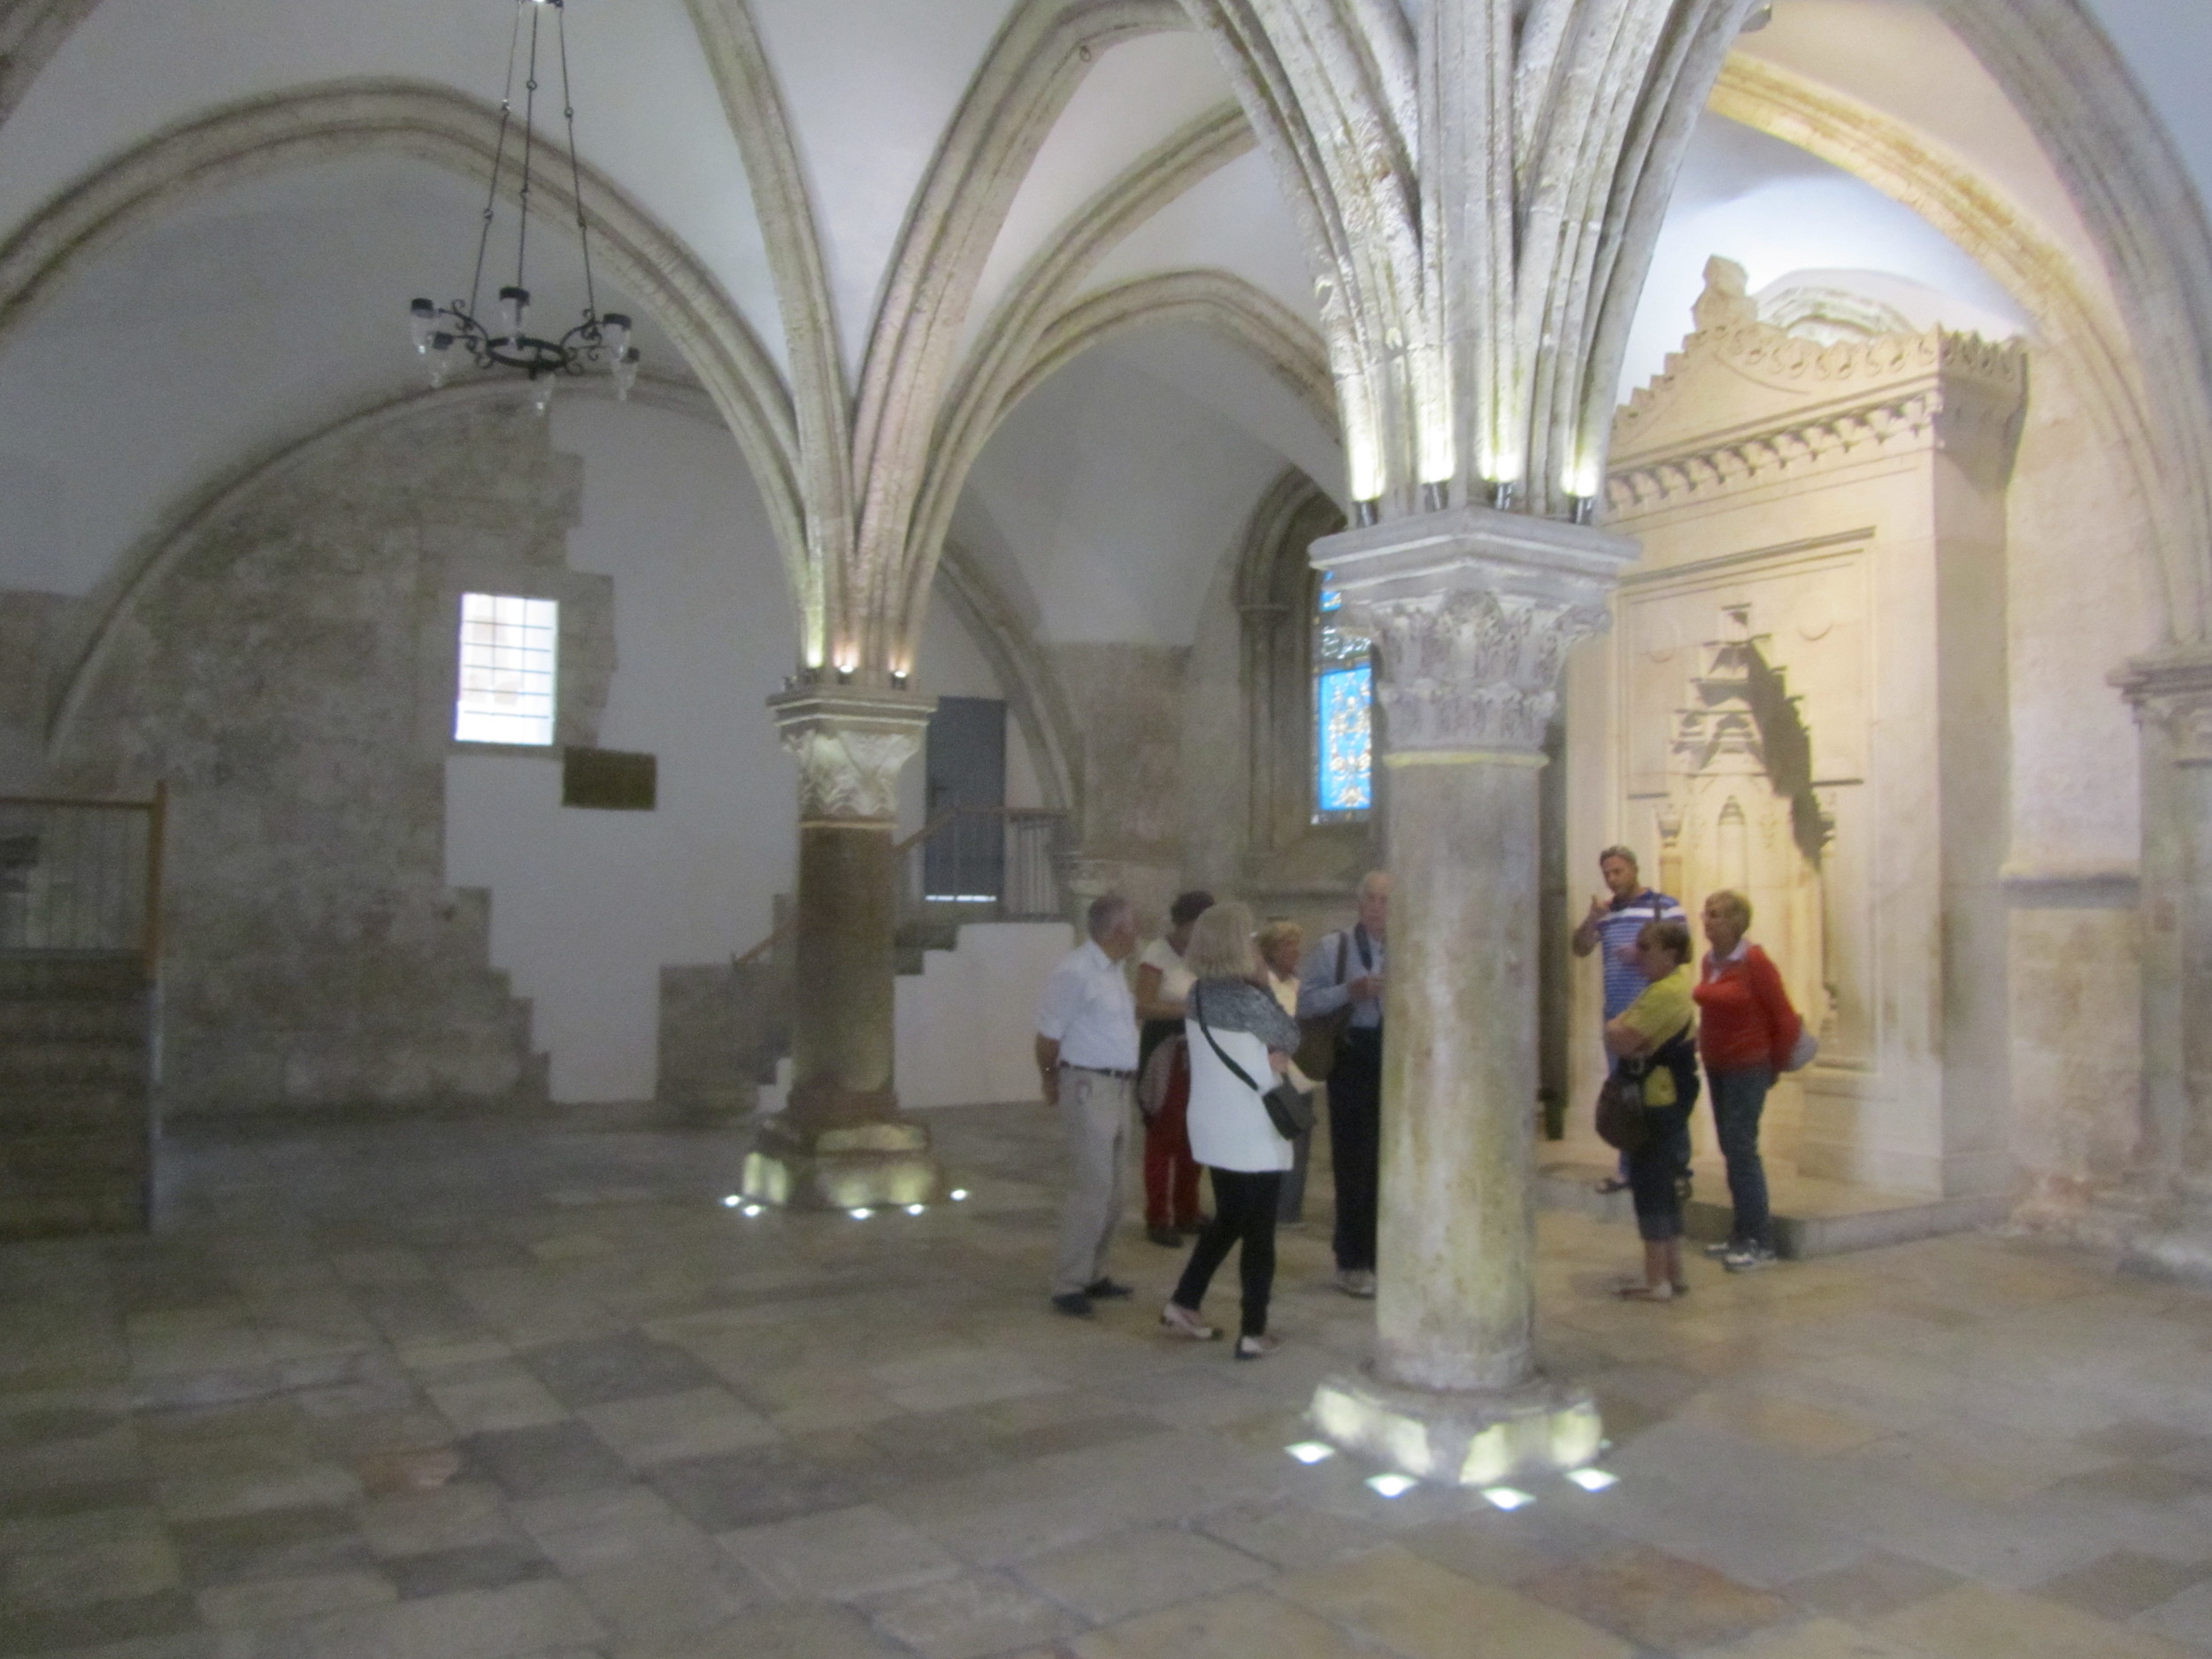 The Upper Room Built Over the Site of Jesus' Last Supper